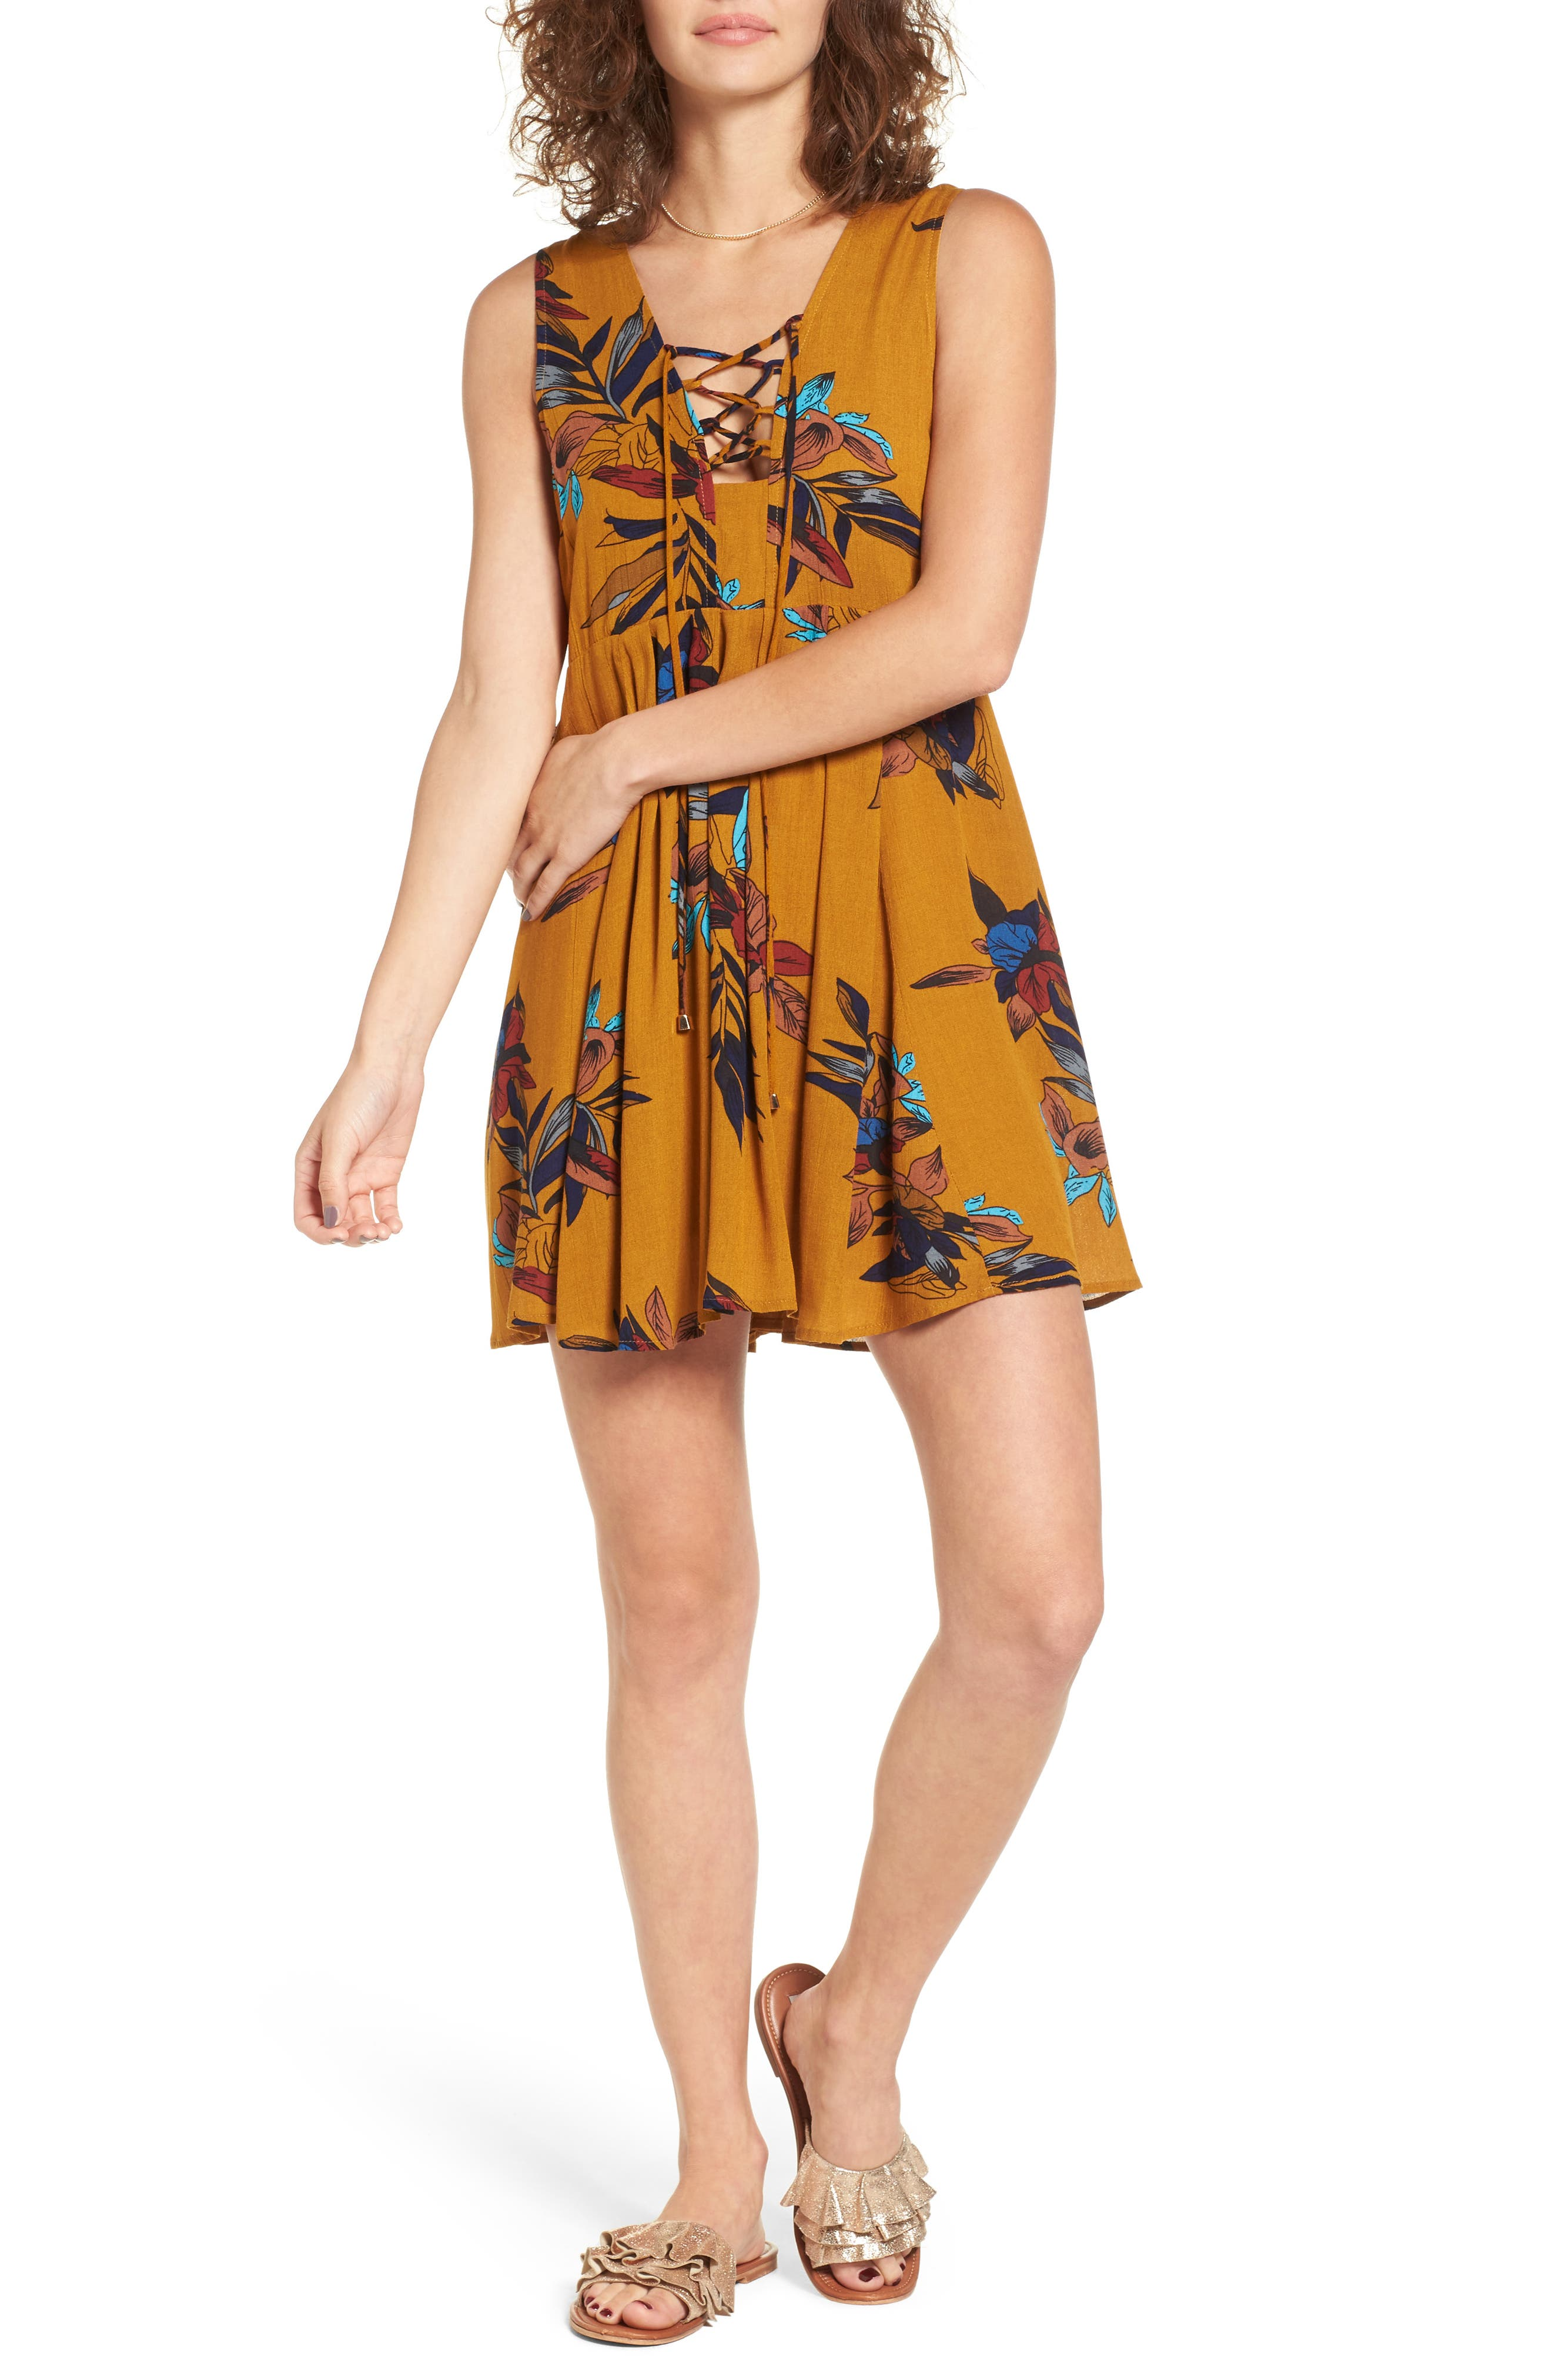 Everly Lace-Up Skater Dress